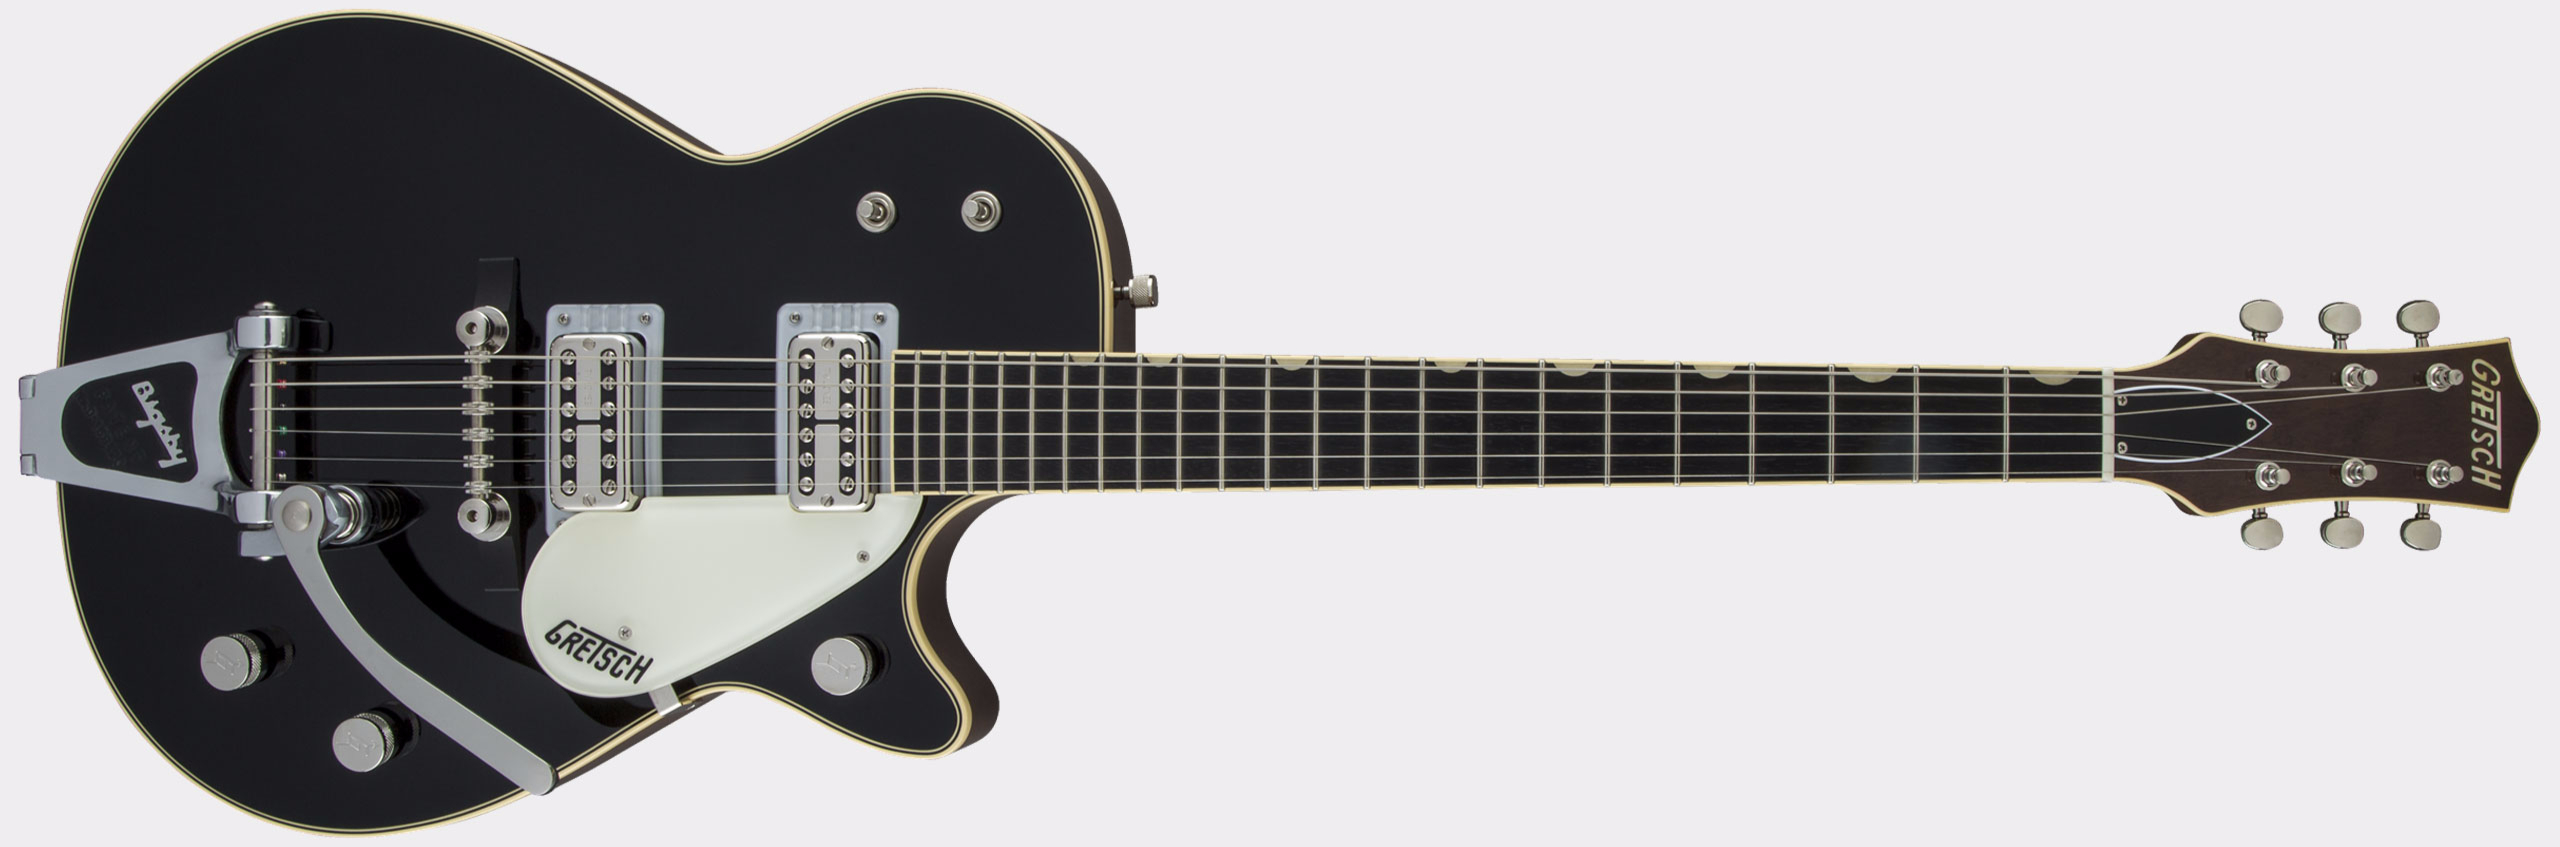 GRETSCH G6128T-59 Vintage Select '59 Duo Jet Bigsby Black